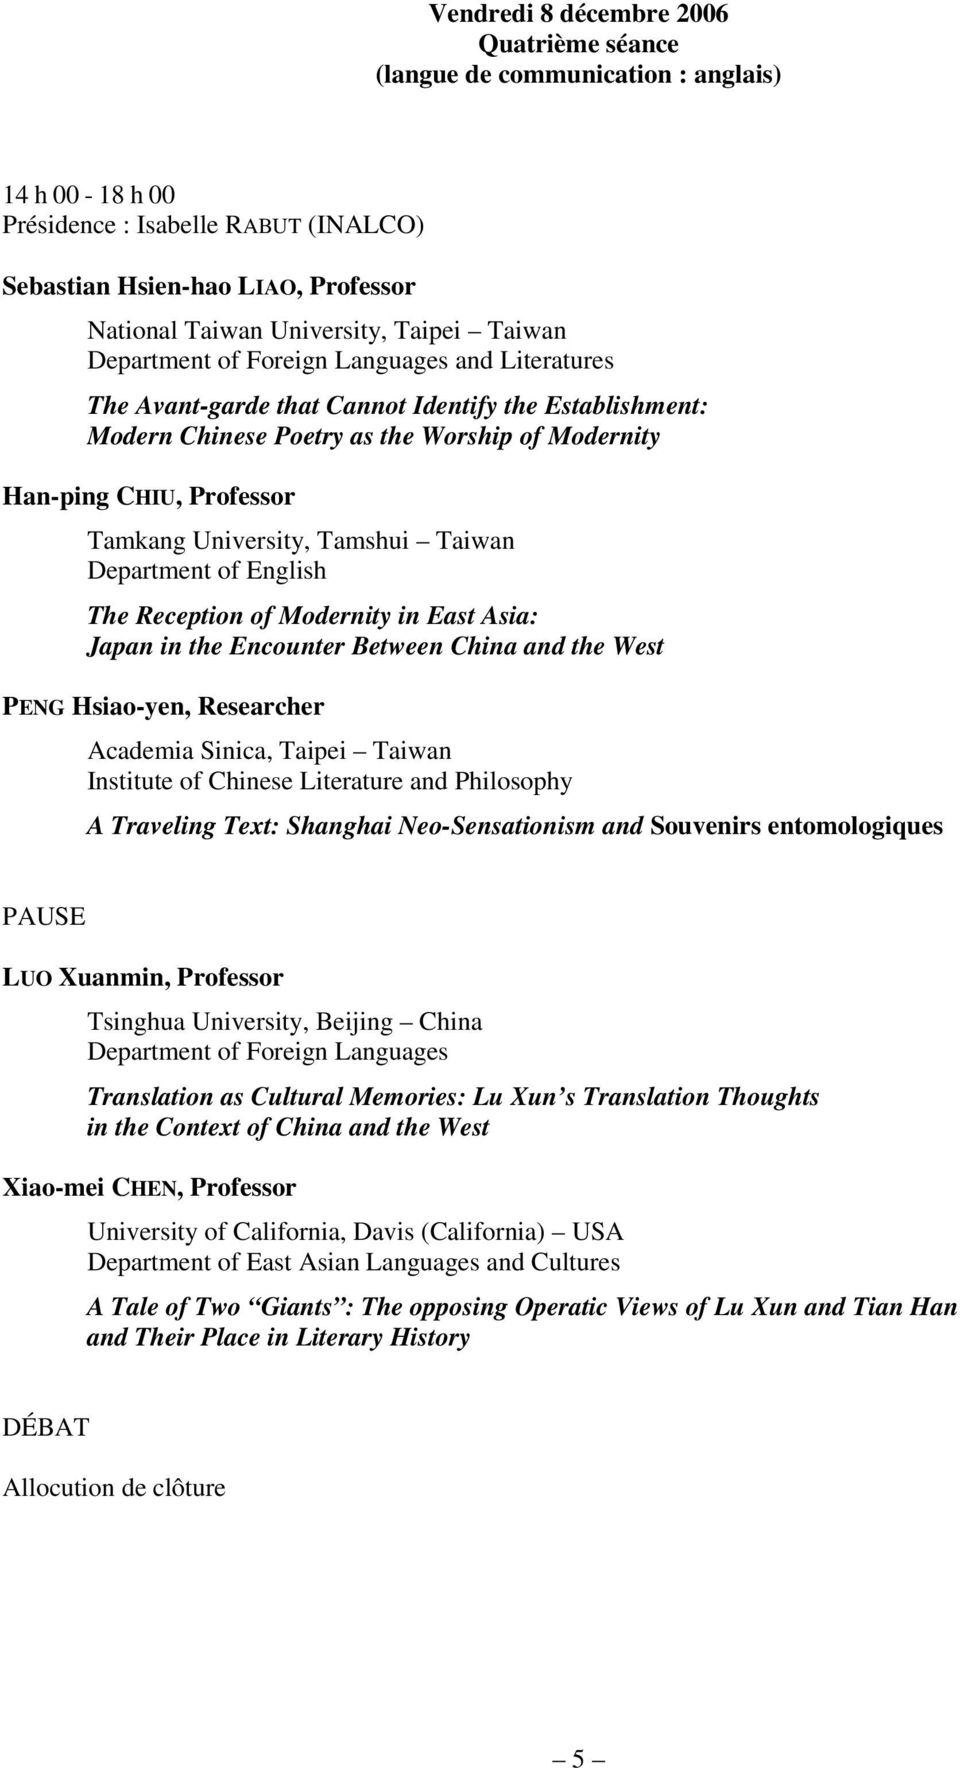 East Asia: Japan in the Encounter Between China and the West PENG Hsiao-yen, Researcher A Traveling Text: Shanghai Neo-Sensationism and Souvenirs entomologiques LUO Xuanmin, Professor Tsinghua